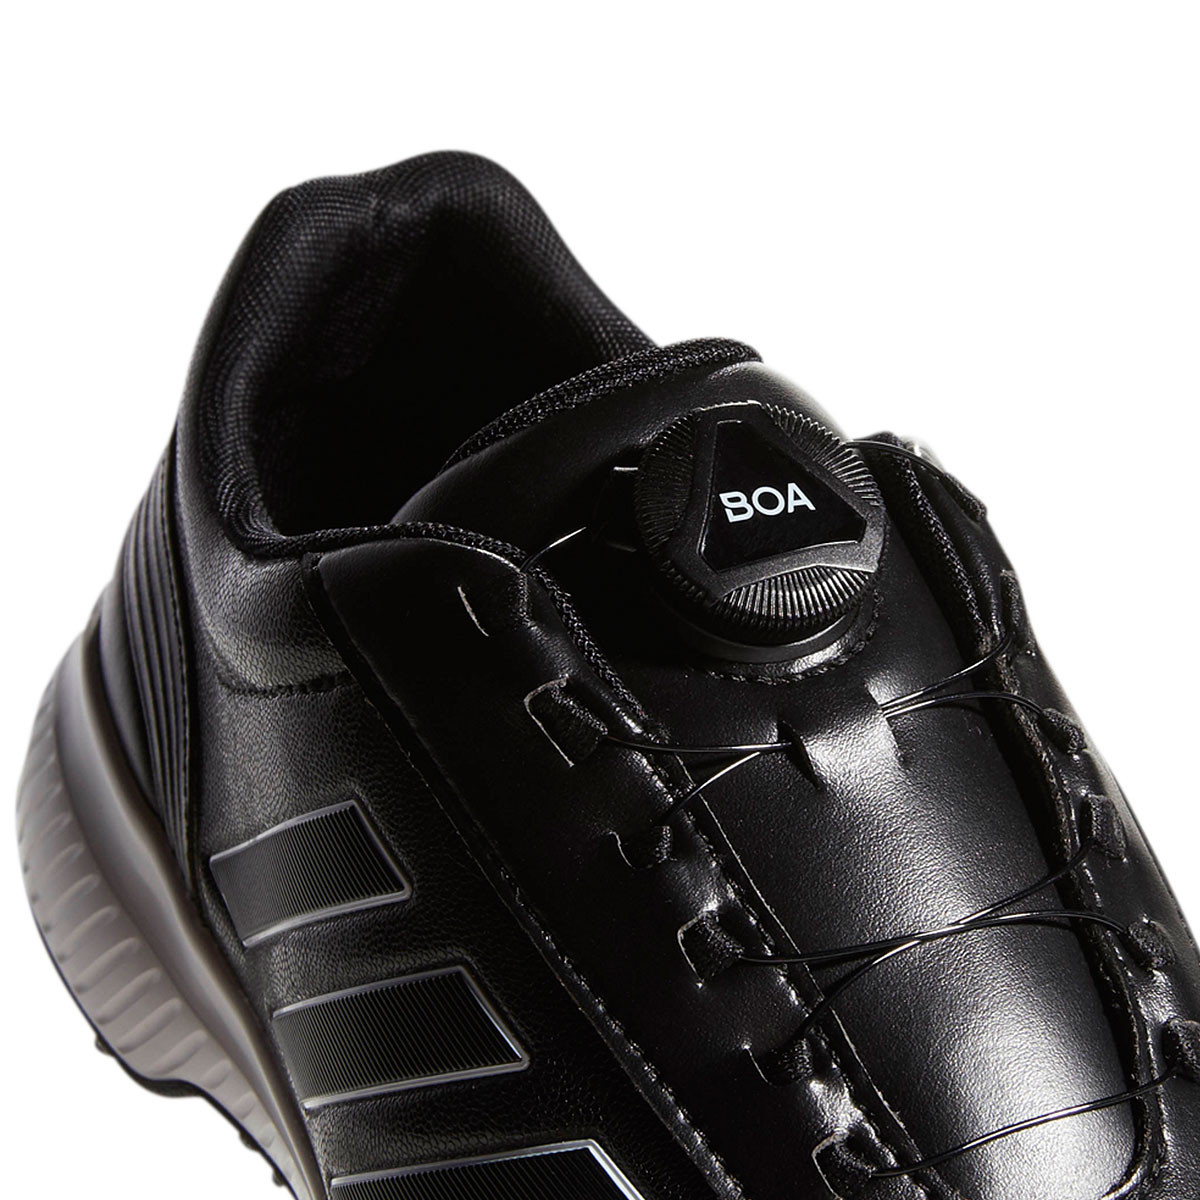 adidas Golf Mens 2019 CP Traxion Boa Spiked Leather Golf Shoes